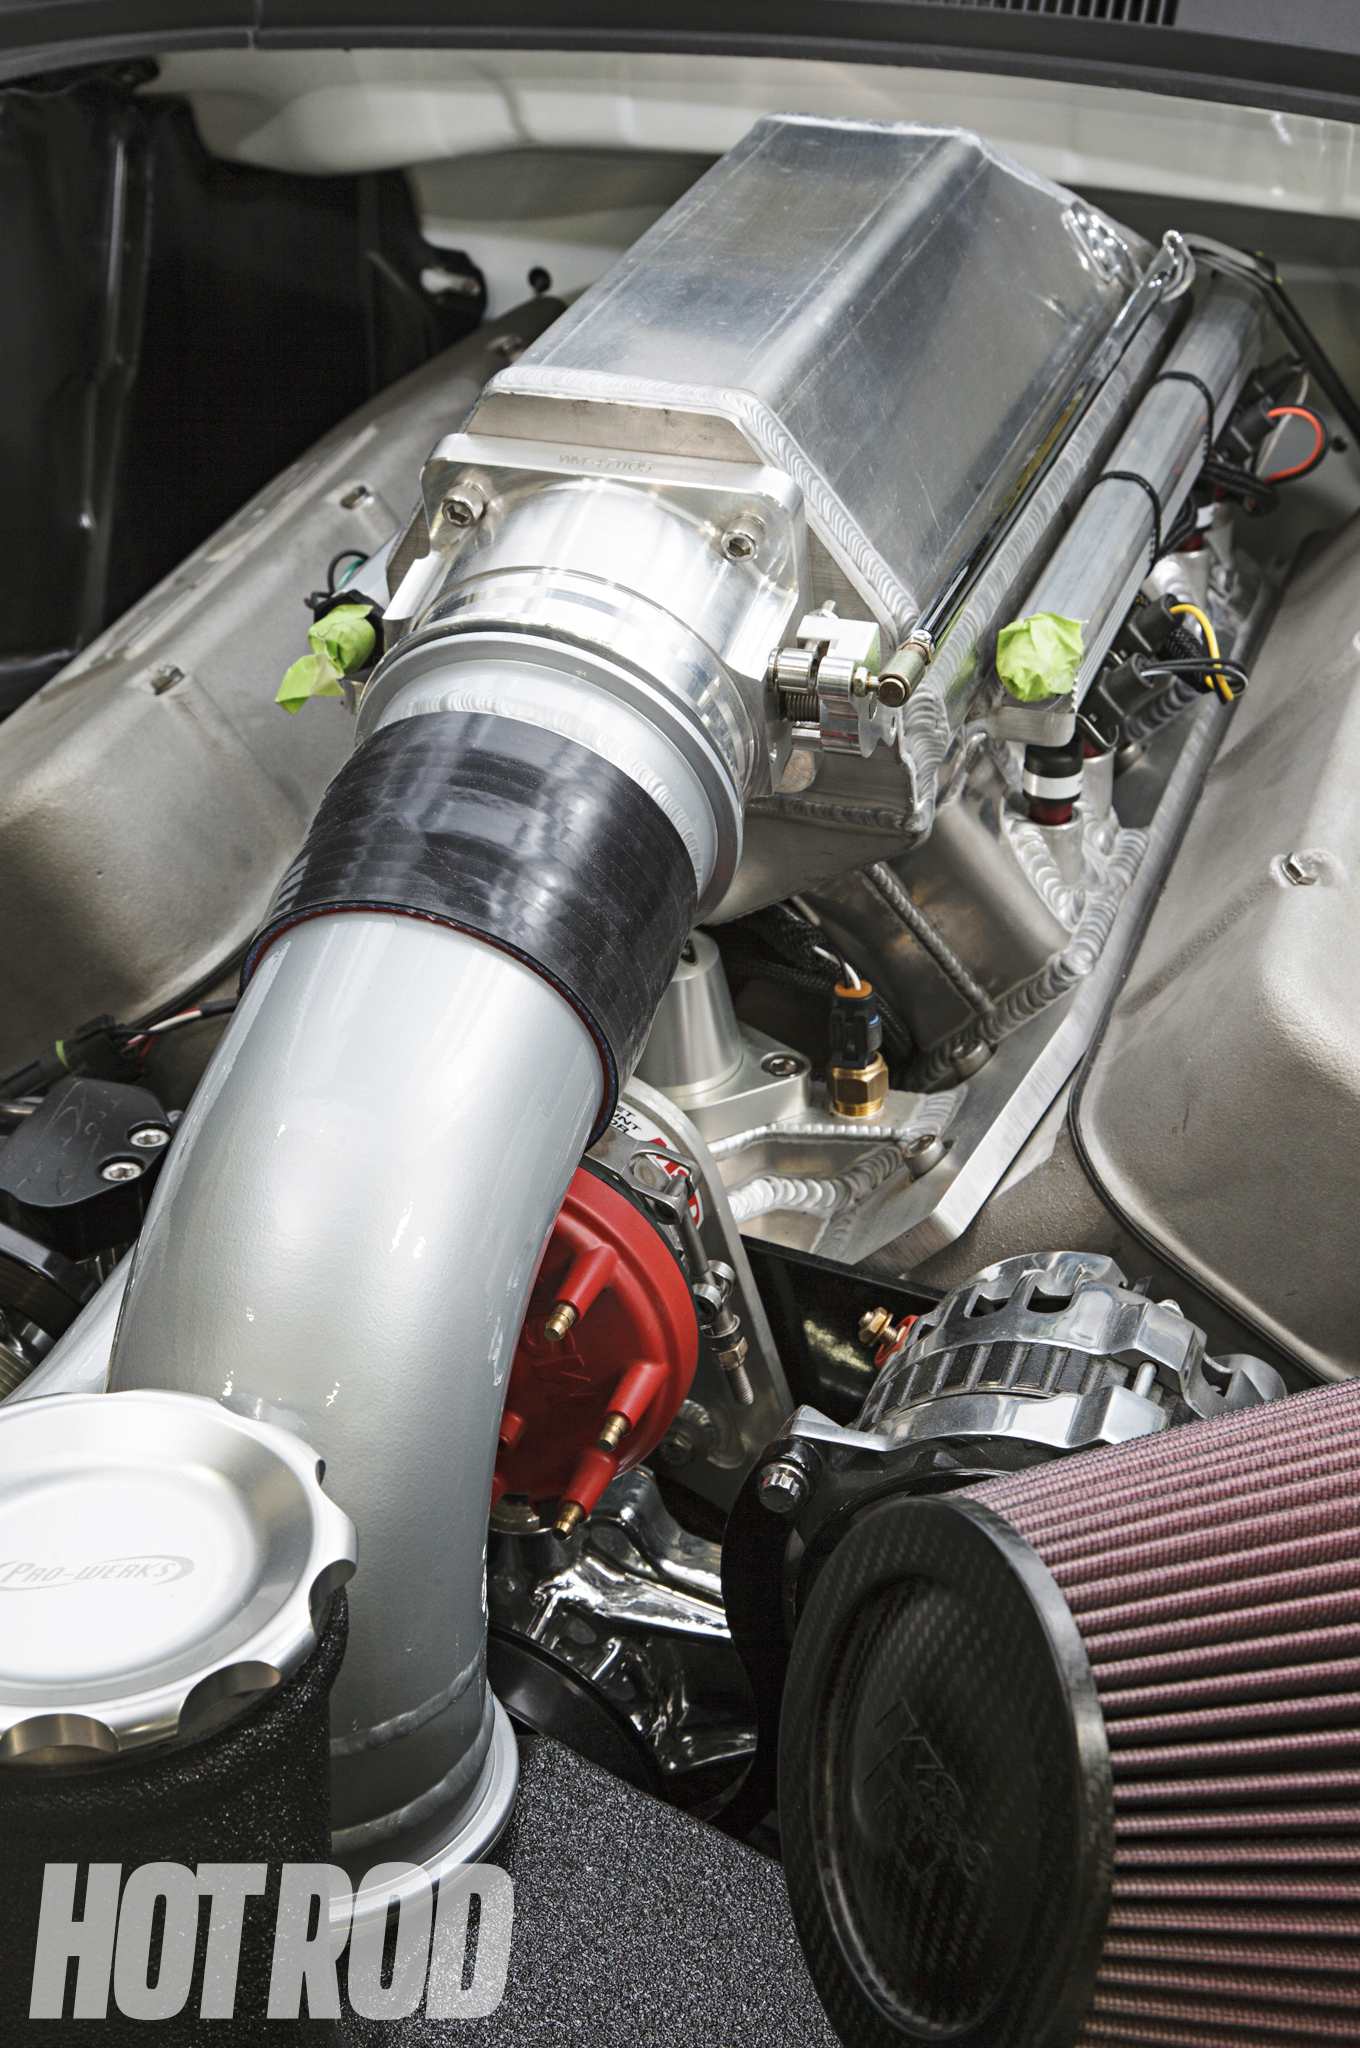 A Wilson 90mm throttle-body flows into a Larson Race Cars-fabbed airbox. Fuel rails are Aeromotive with Precision squirters rated at 220 lb/hr, all controlled by the BigStuff3 controller.